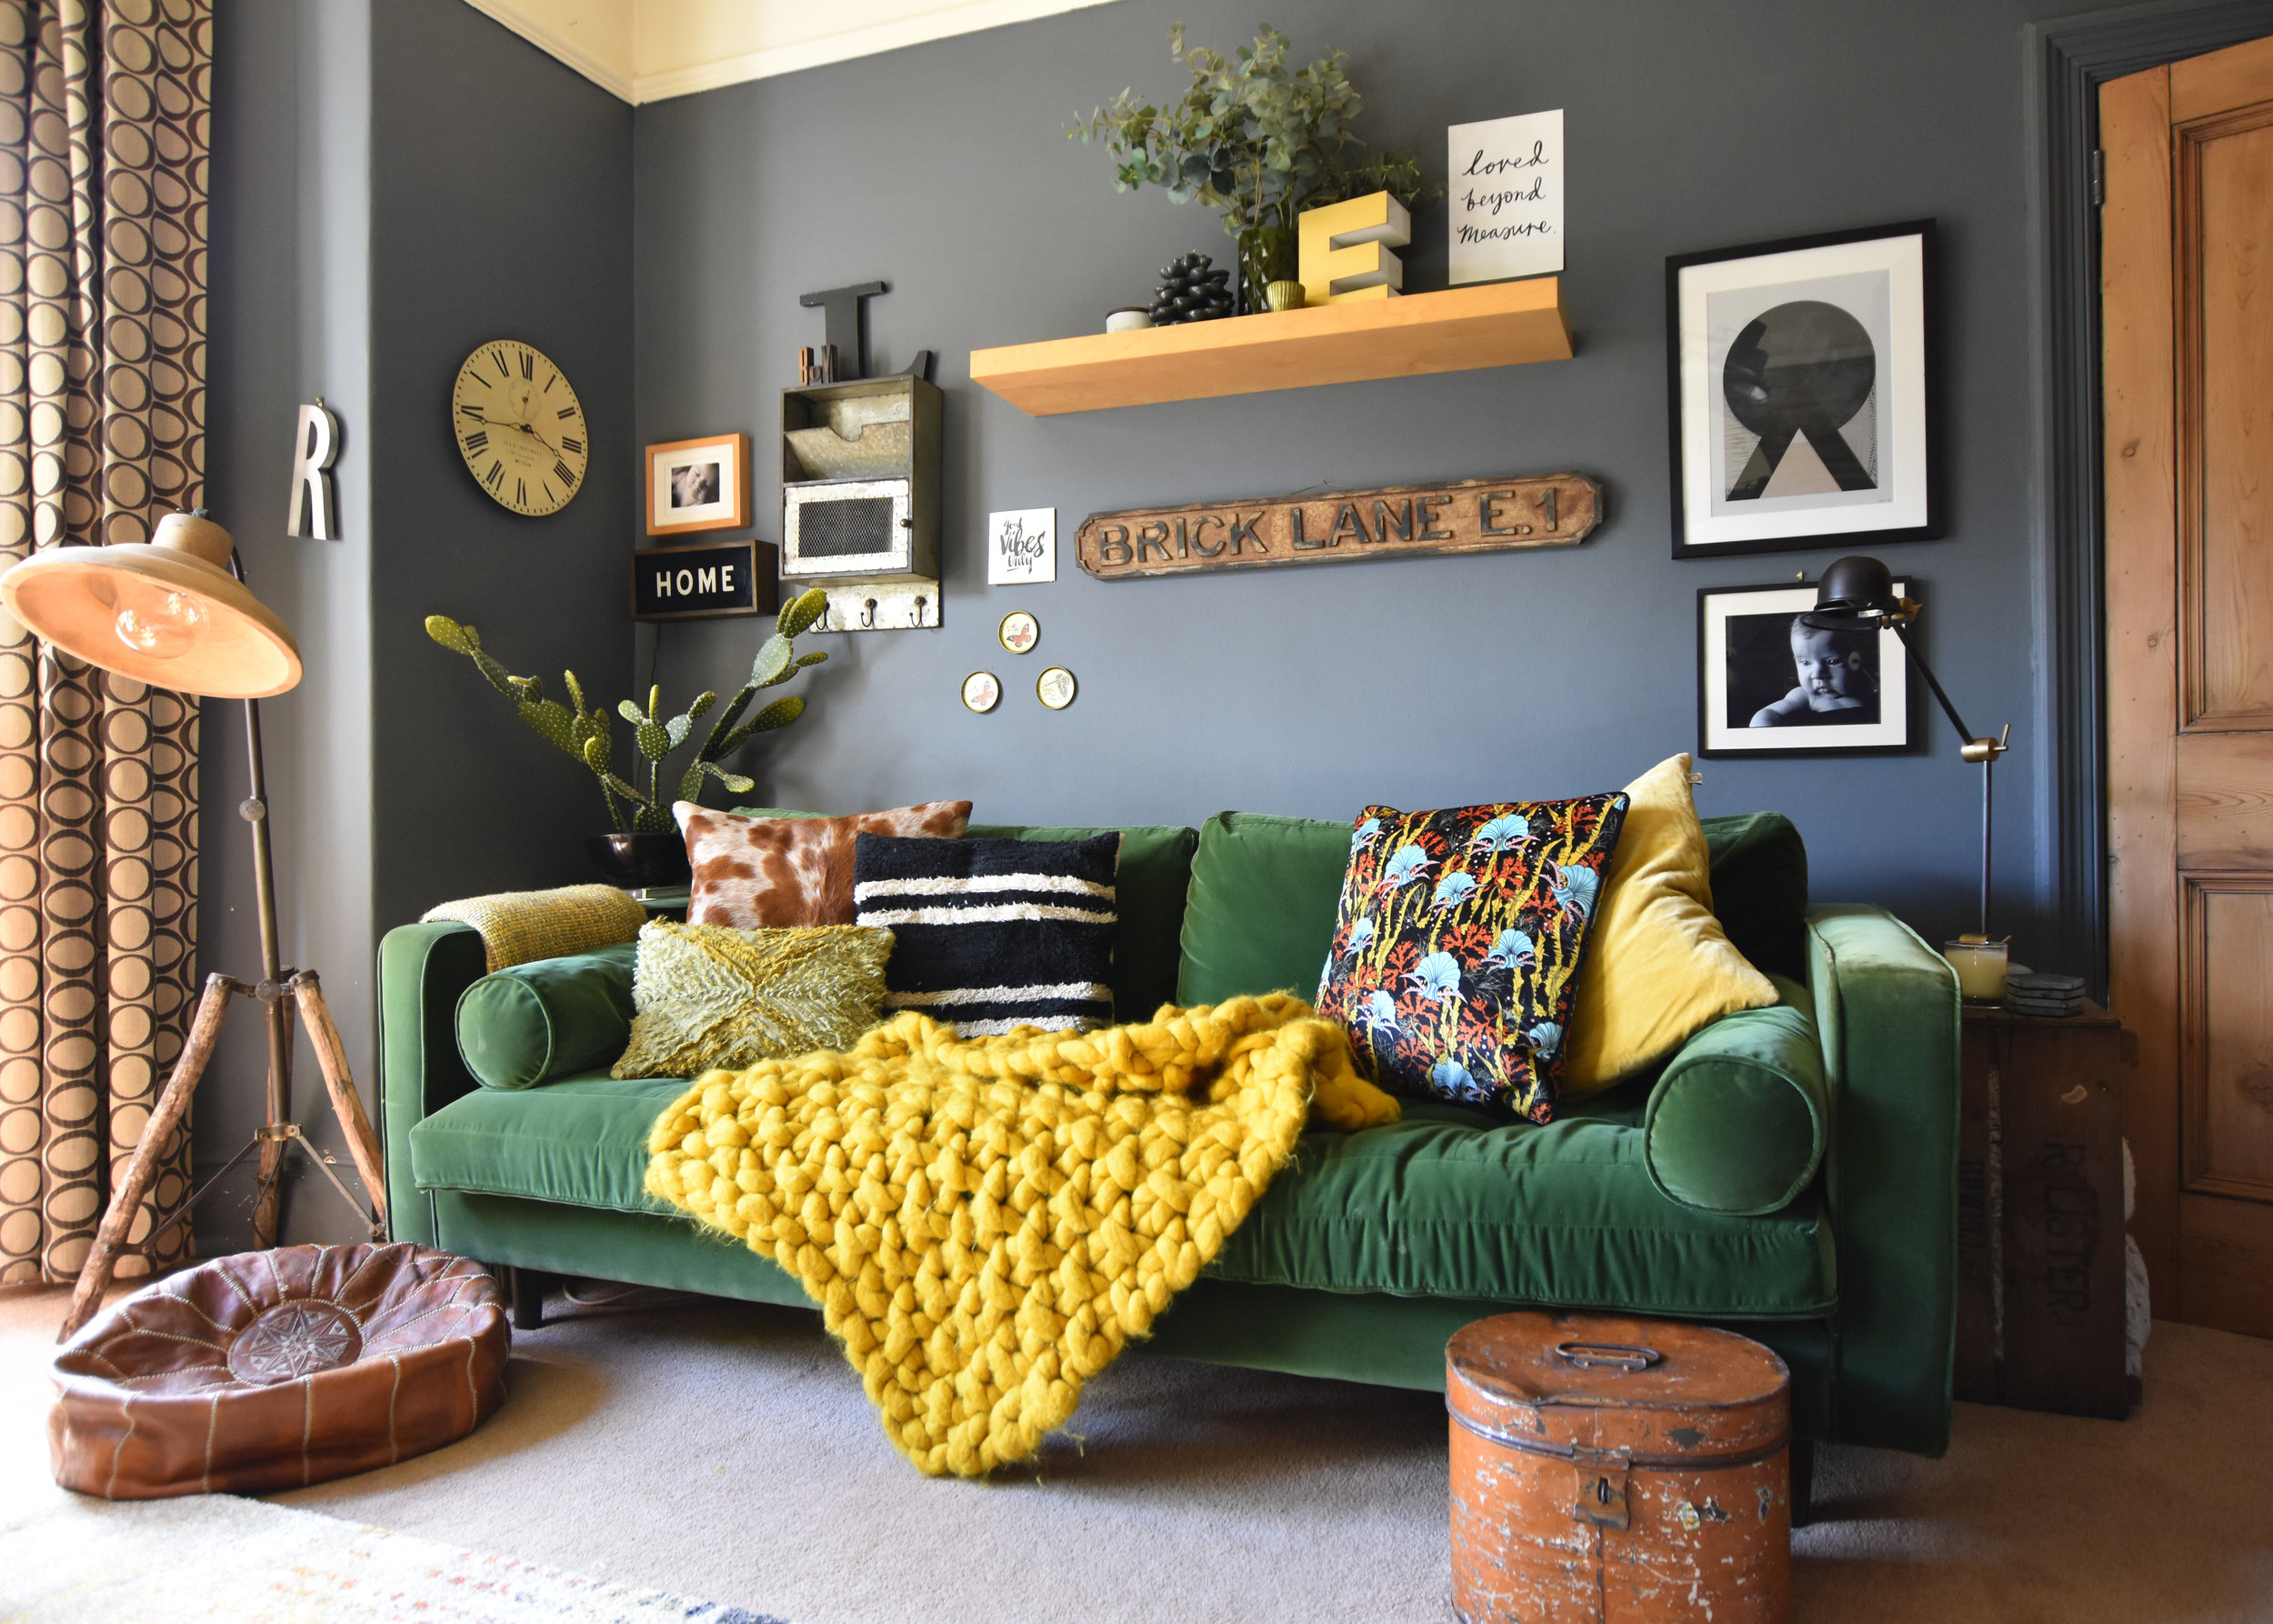 Superb Can A Sofa Change Your Life? The Green Sofa And MADE.COM